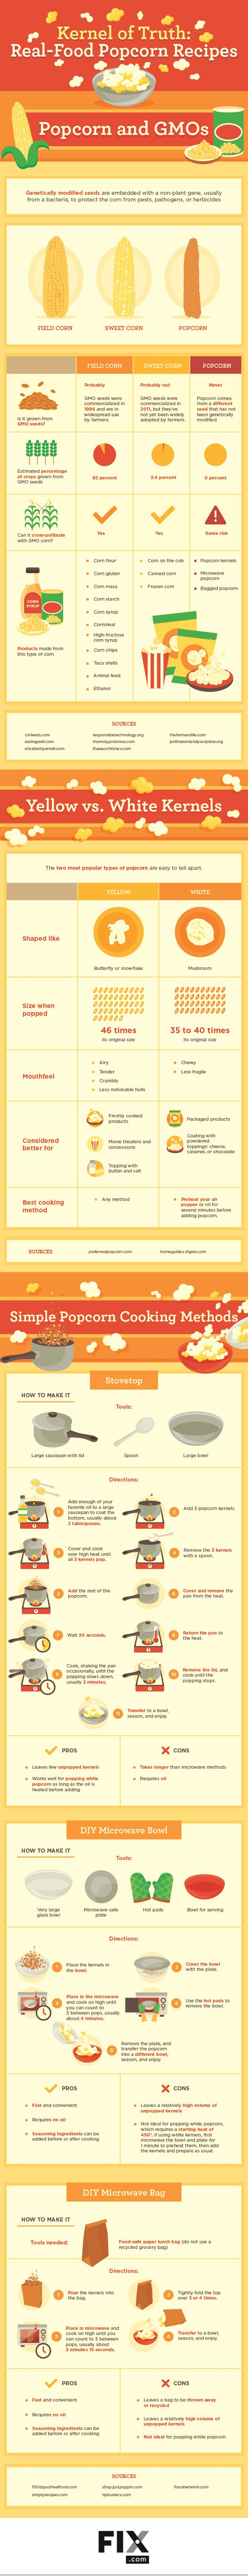 Whether you're looking for a light snack or wanting to indulge, we have a popcorn recipe for you!